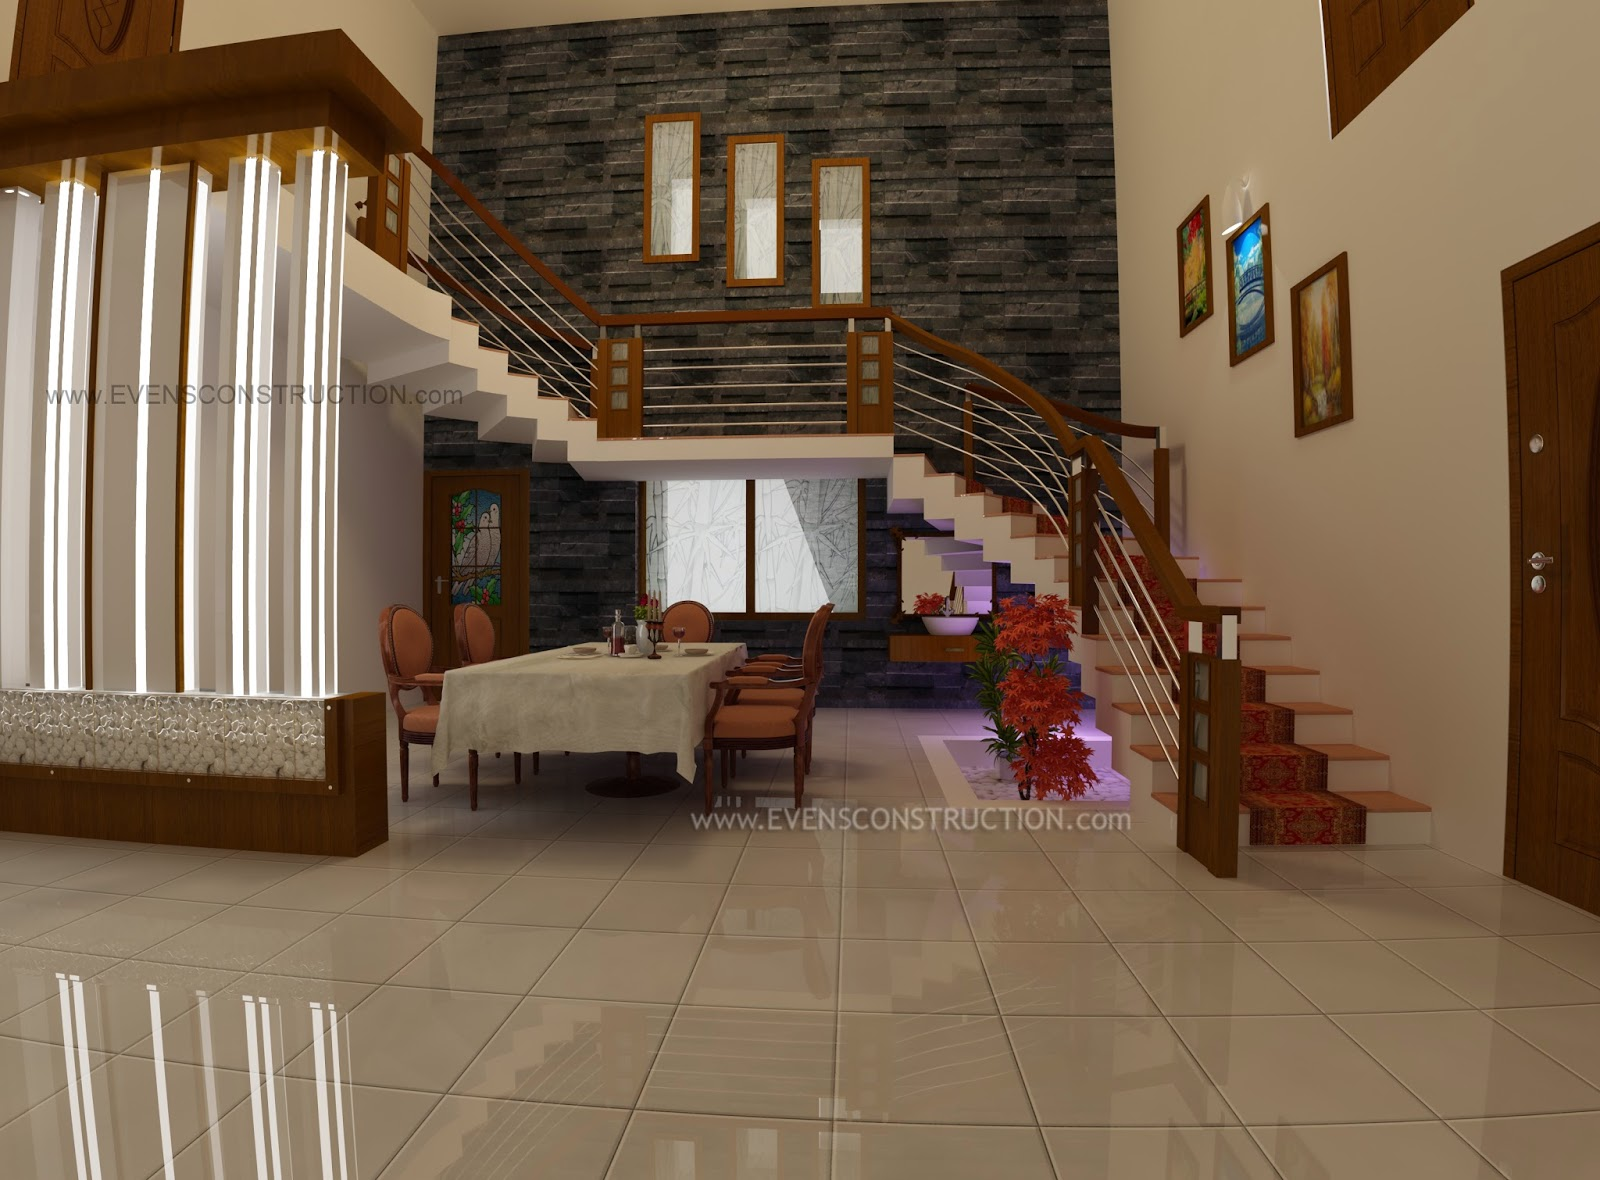 Stair Area And Dining Room Designed For Kerala Home